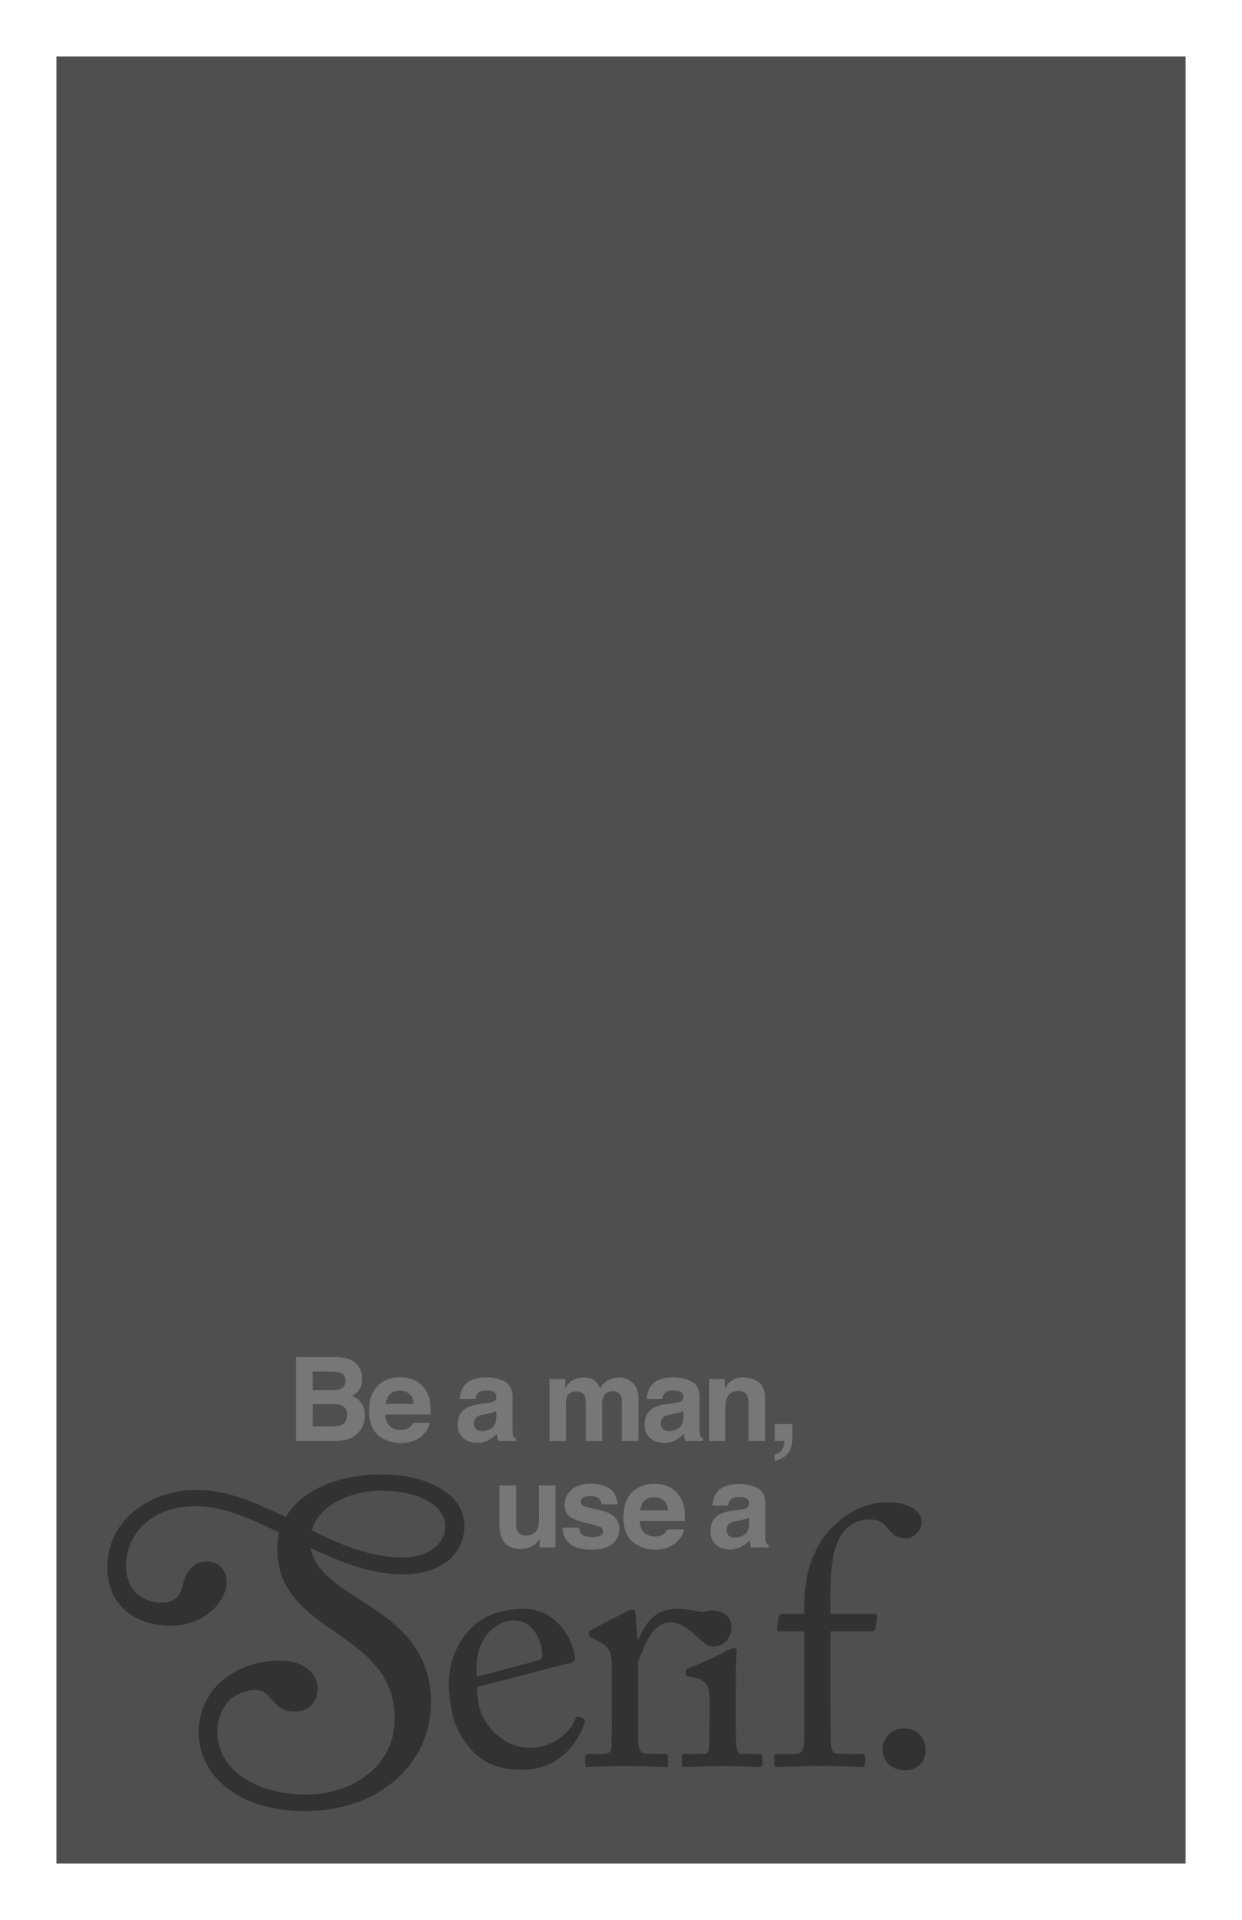 Be a man, use a SERIF I'm going to spend some time to develop this further. So far I'm pretty satisfied with the S, though the r-i ligature could probably use some lovin'